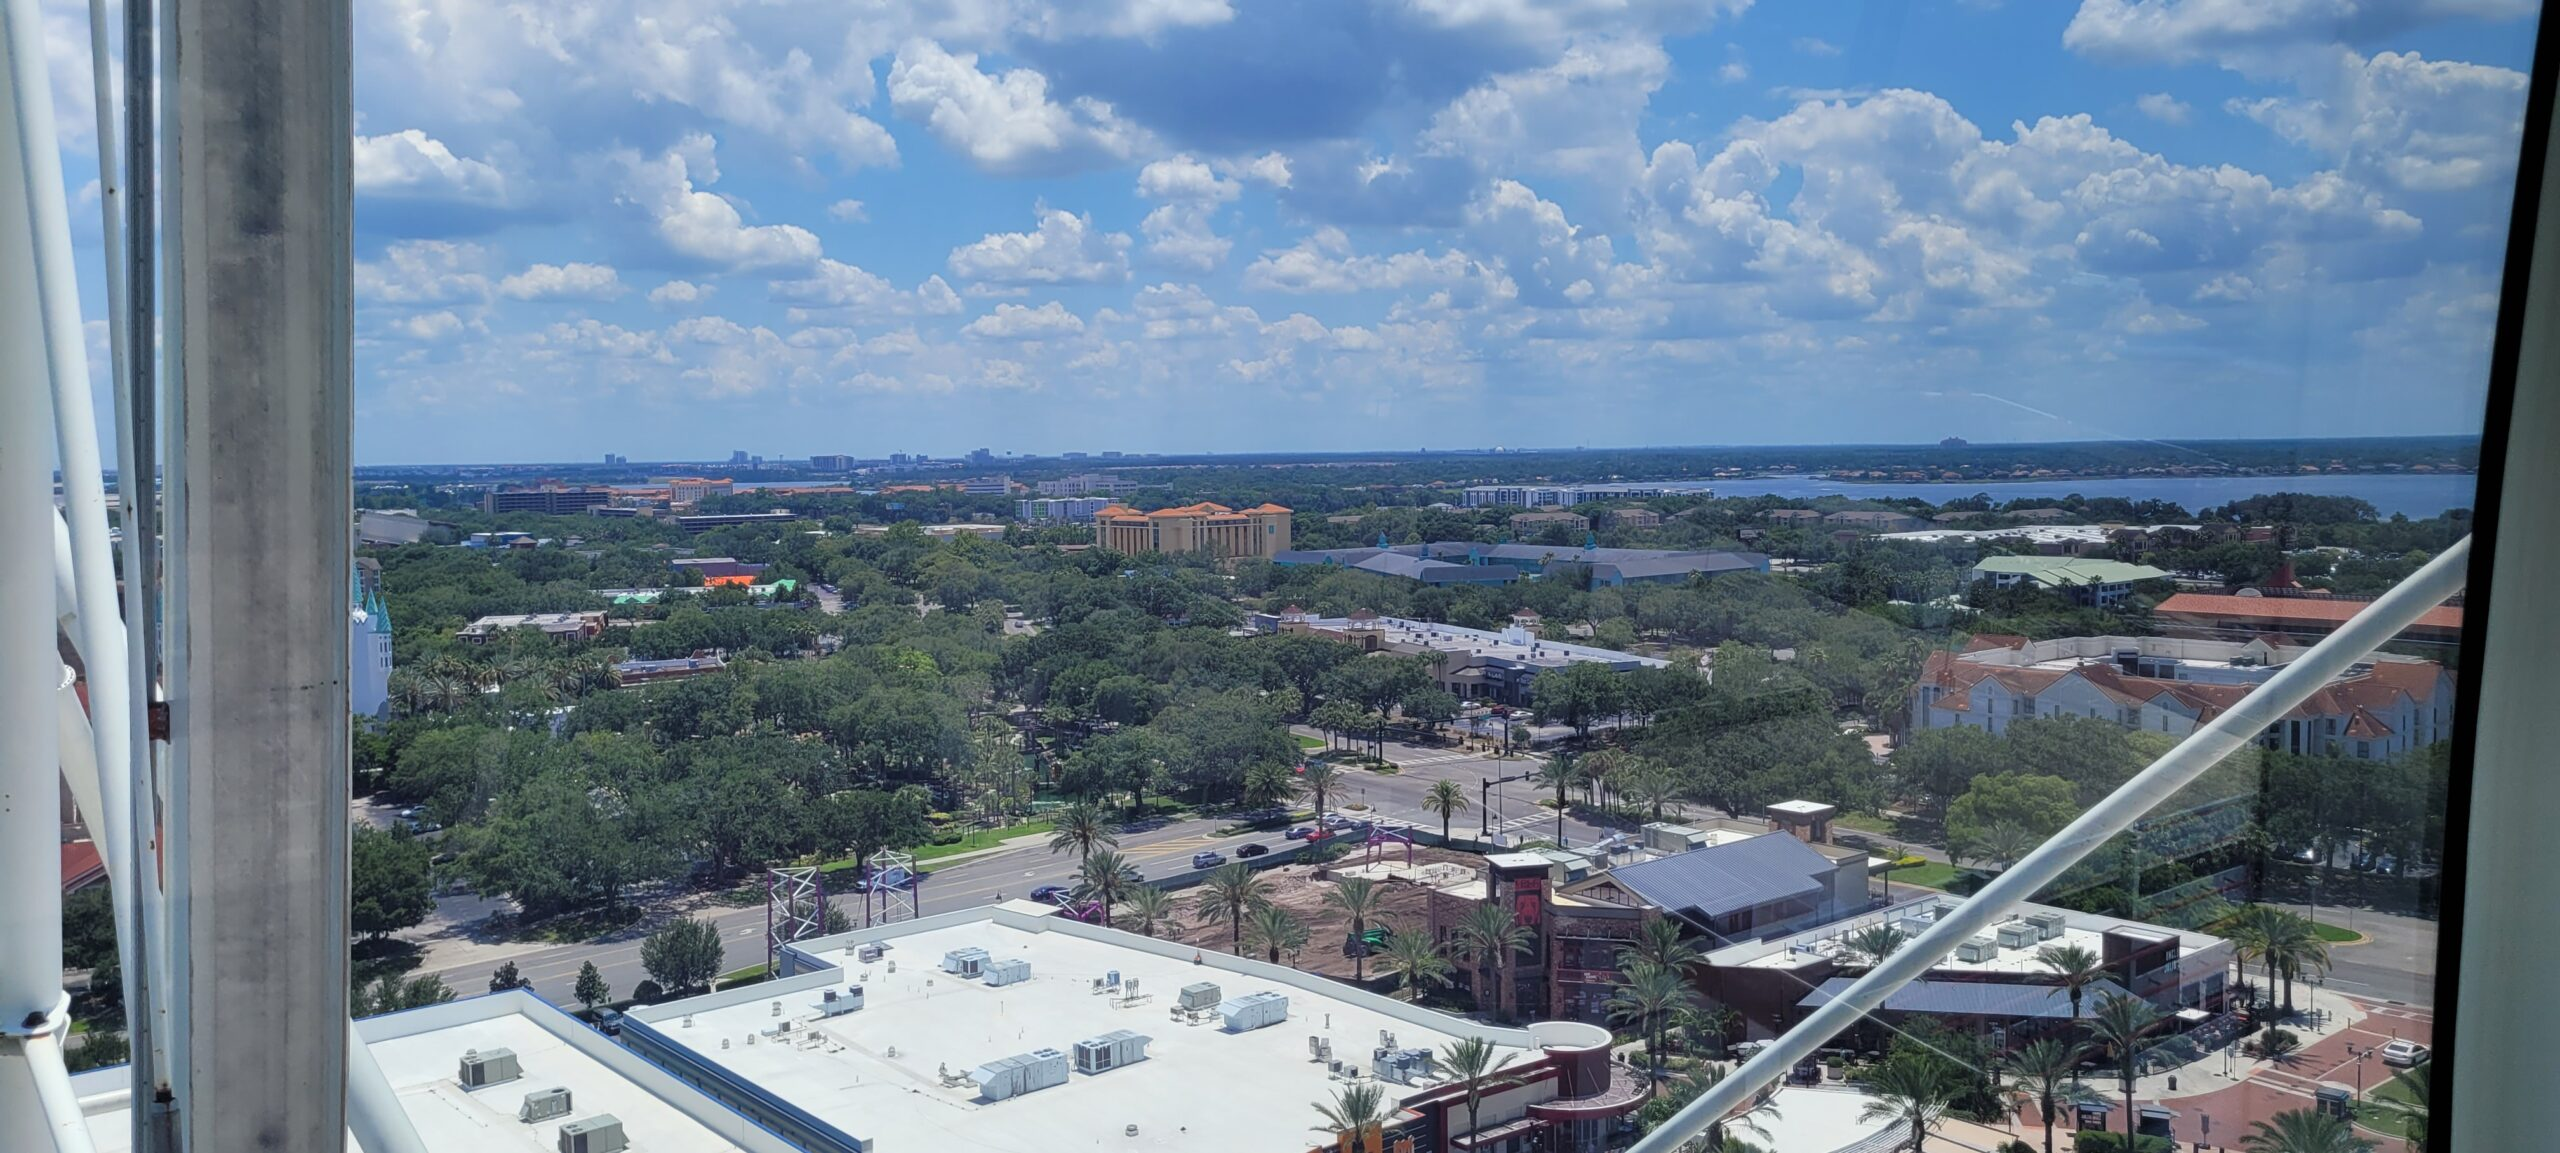 Have a family fun day at ICON Park in Orlando 25